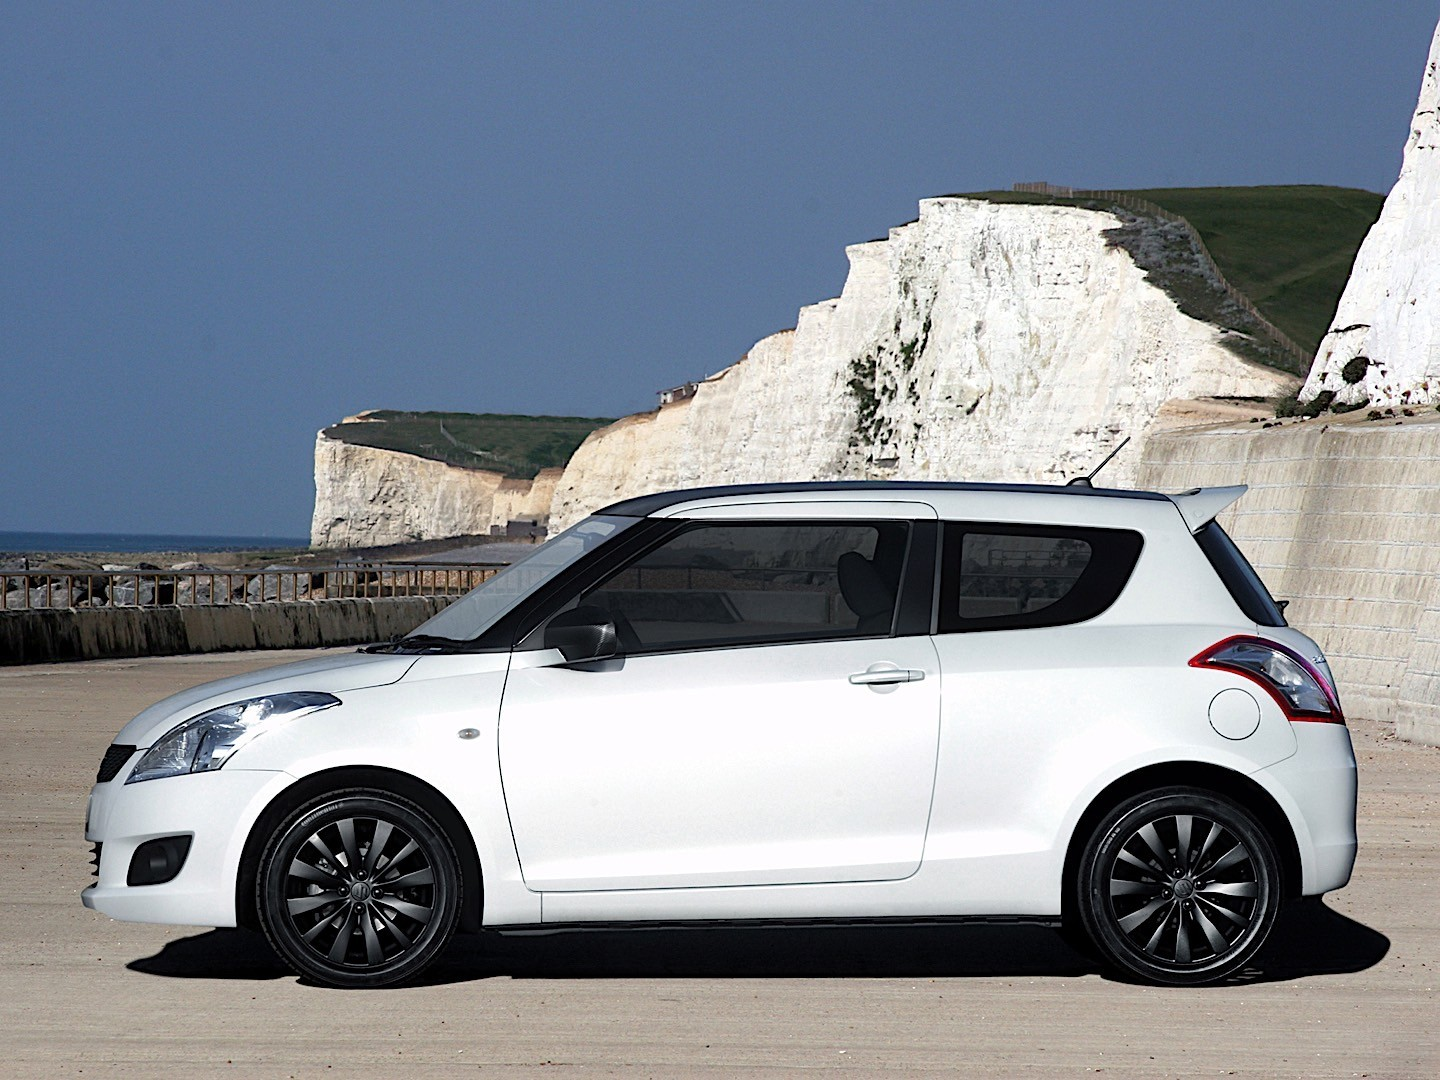 SUZUKI Swift 3 Doors specs - 2010, 2011, 2012, 2013, 2014 - autoevolution